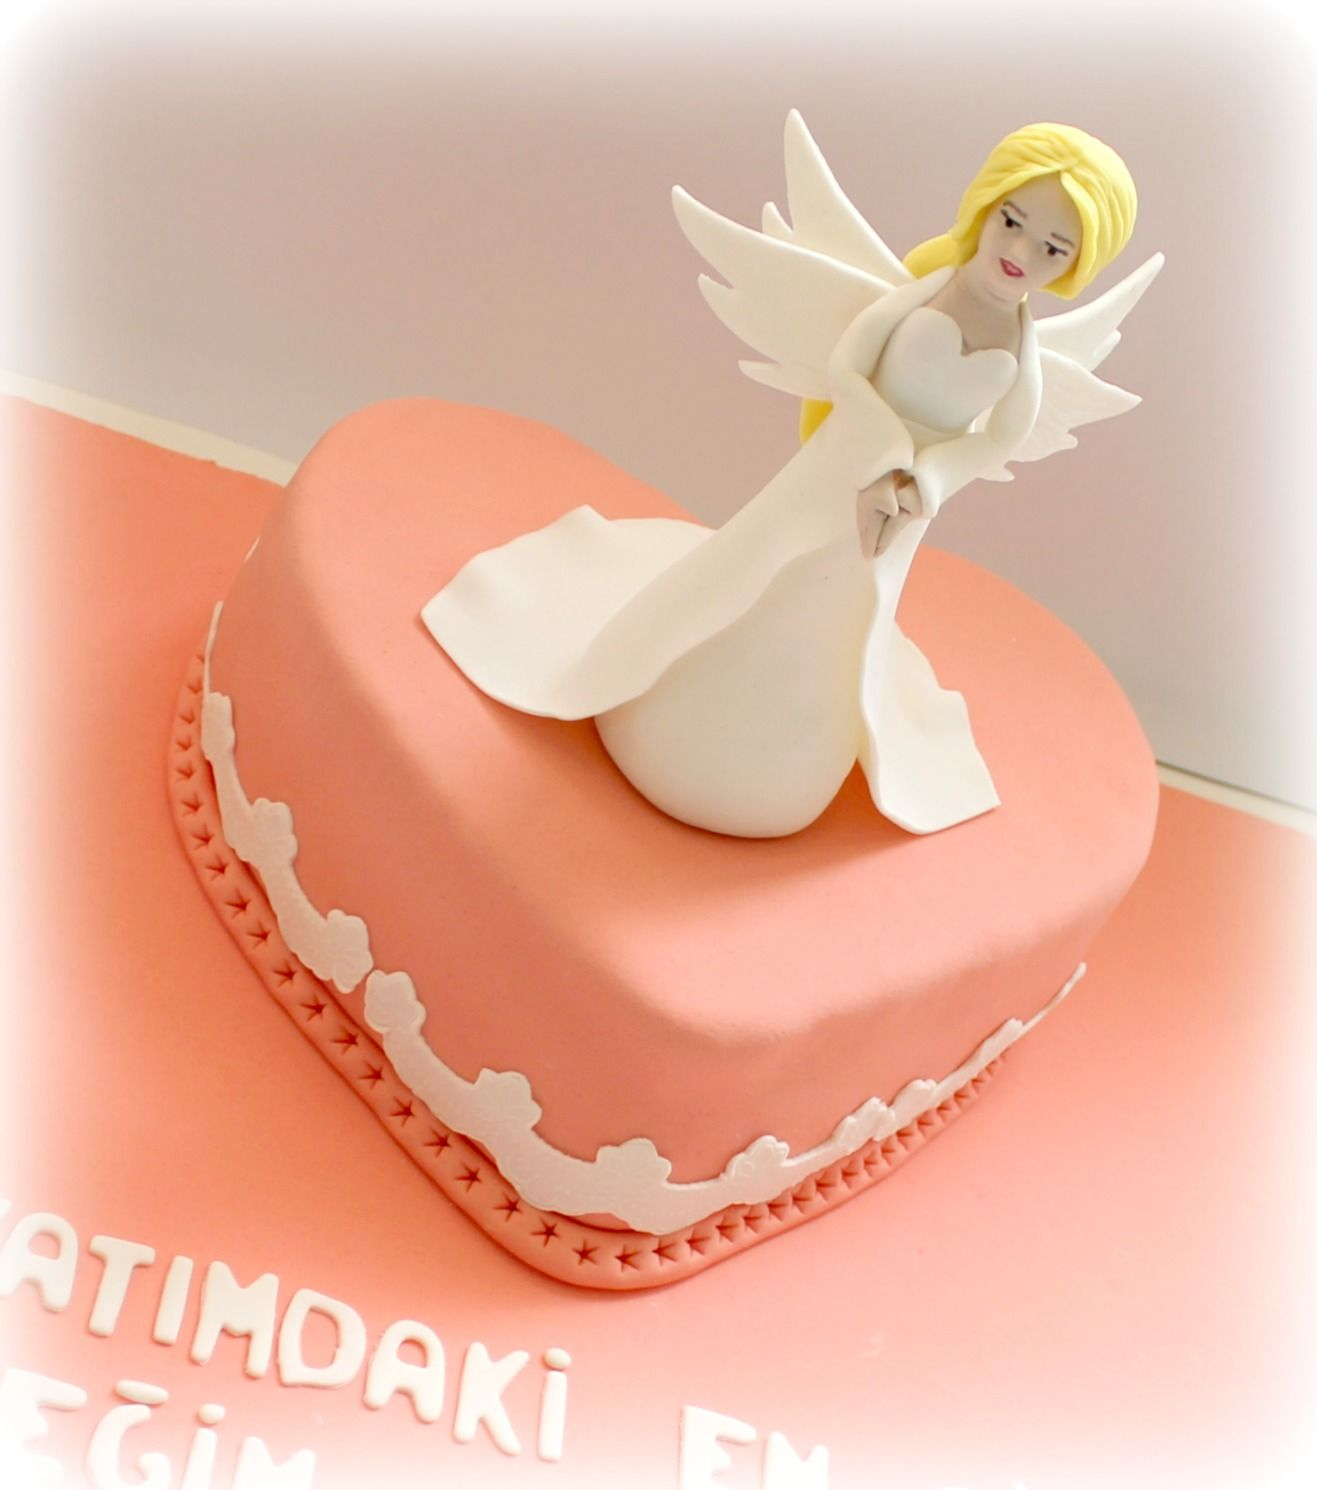 Angel birthday cake Ebruli Cake Design Pinterest Birthday